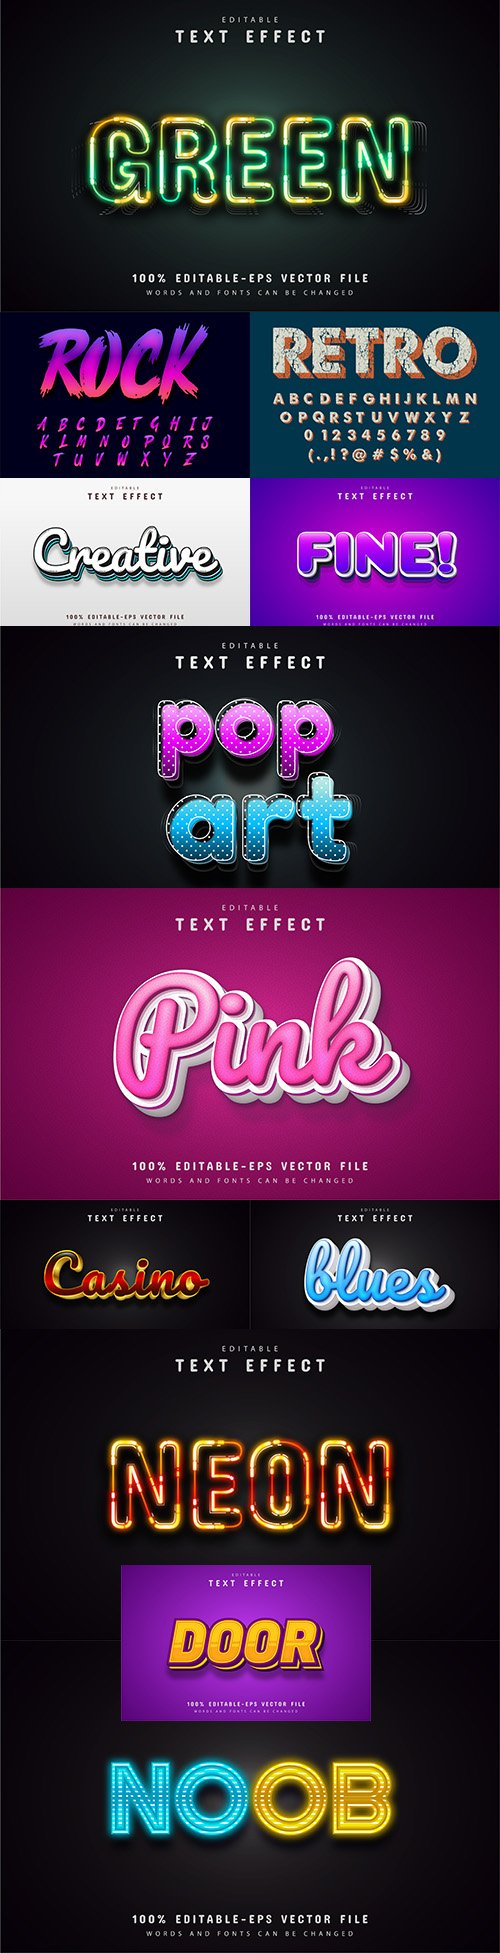 Editable font and 3d effect text design collection illustration 66